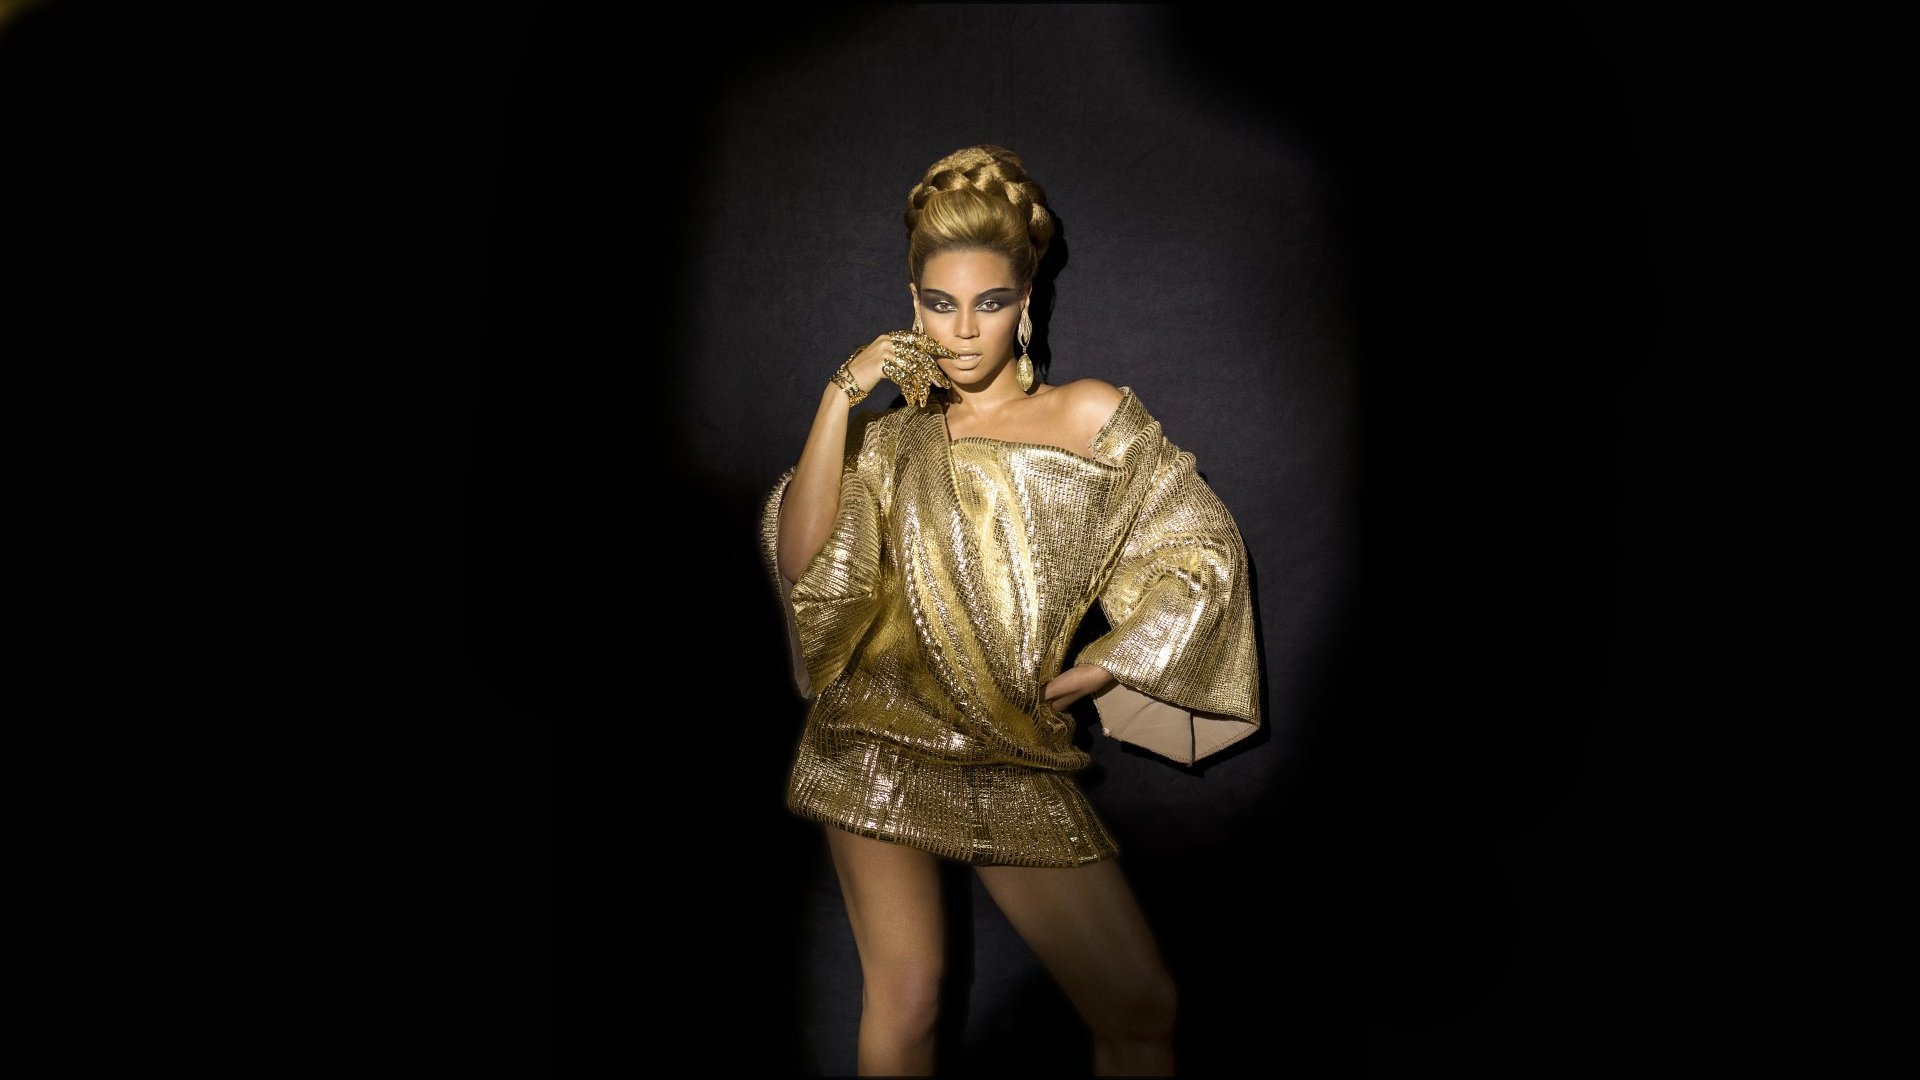 beyonce wallpaper wallpaper high definition high